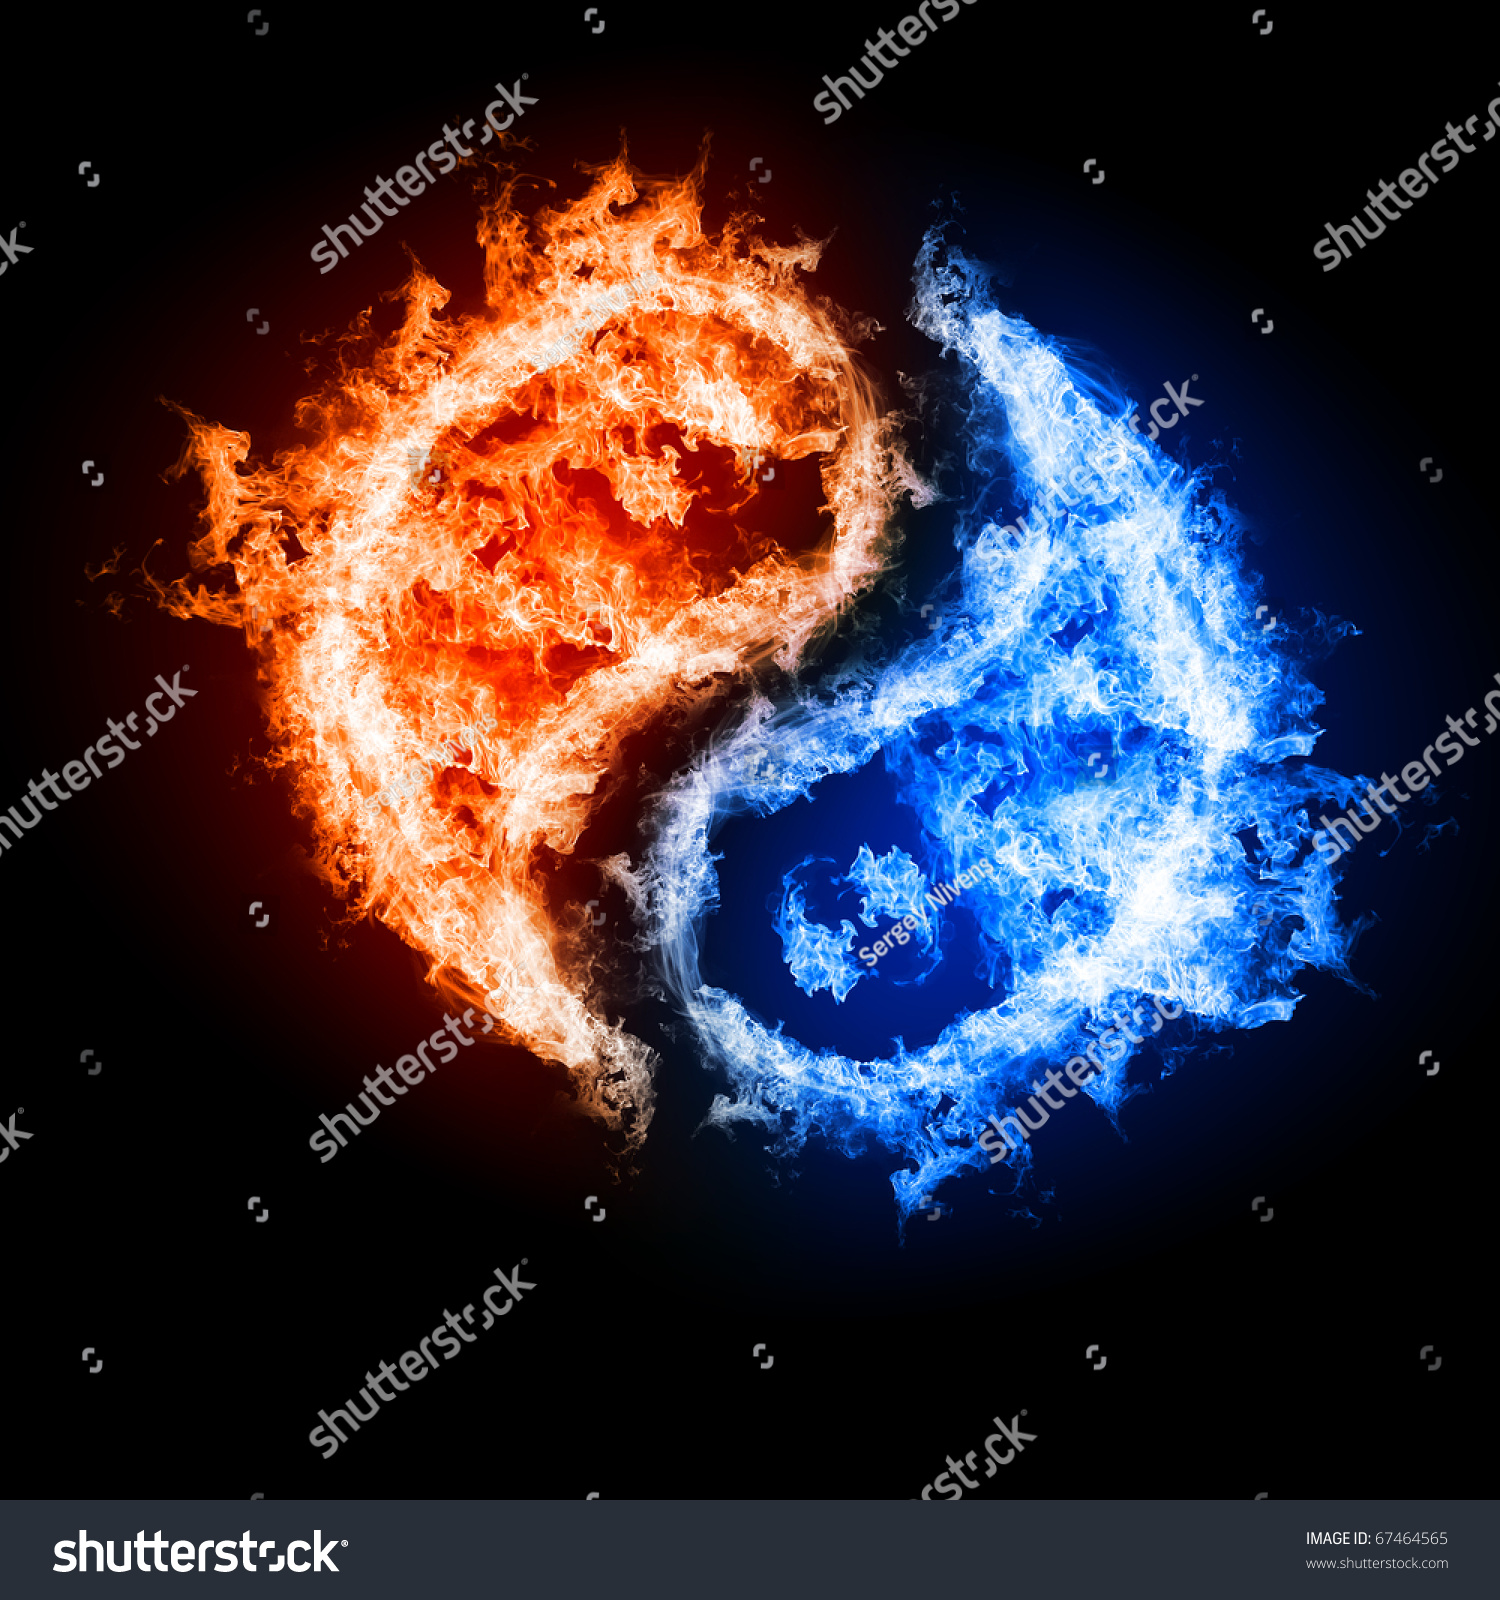 Symbol yin yang dark background form stock illustration 67464565 symbol of yin and yang of the dark background in the form of fire and water biocorpaavc Choice Image